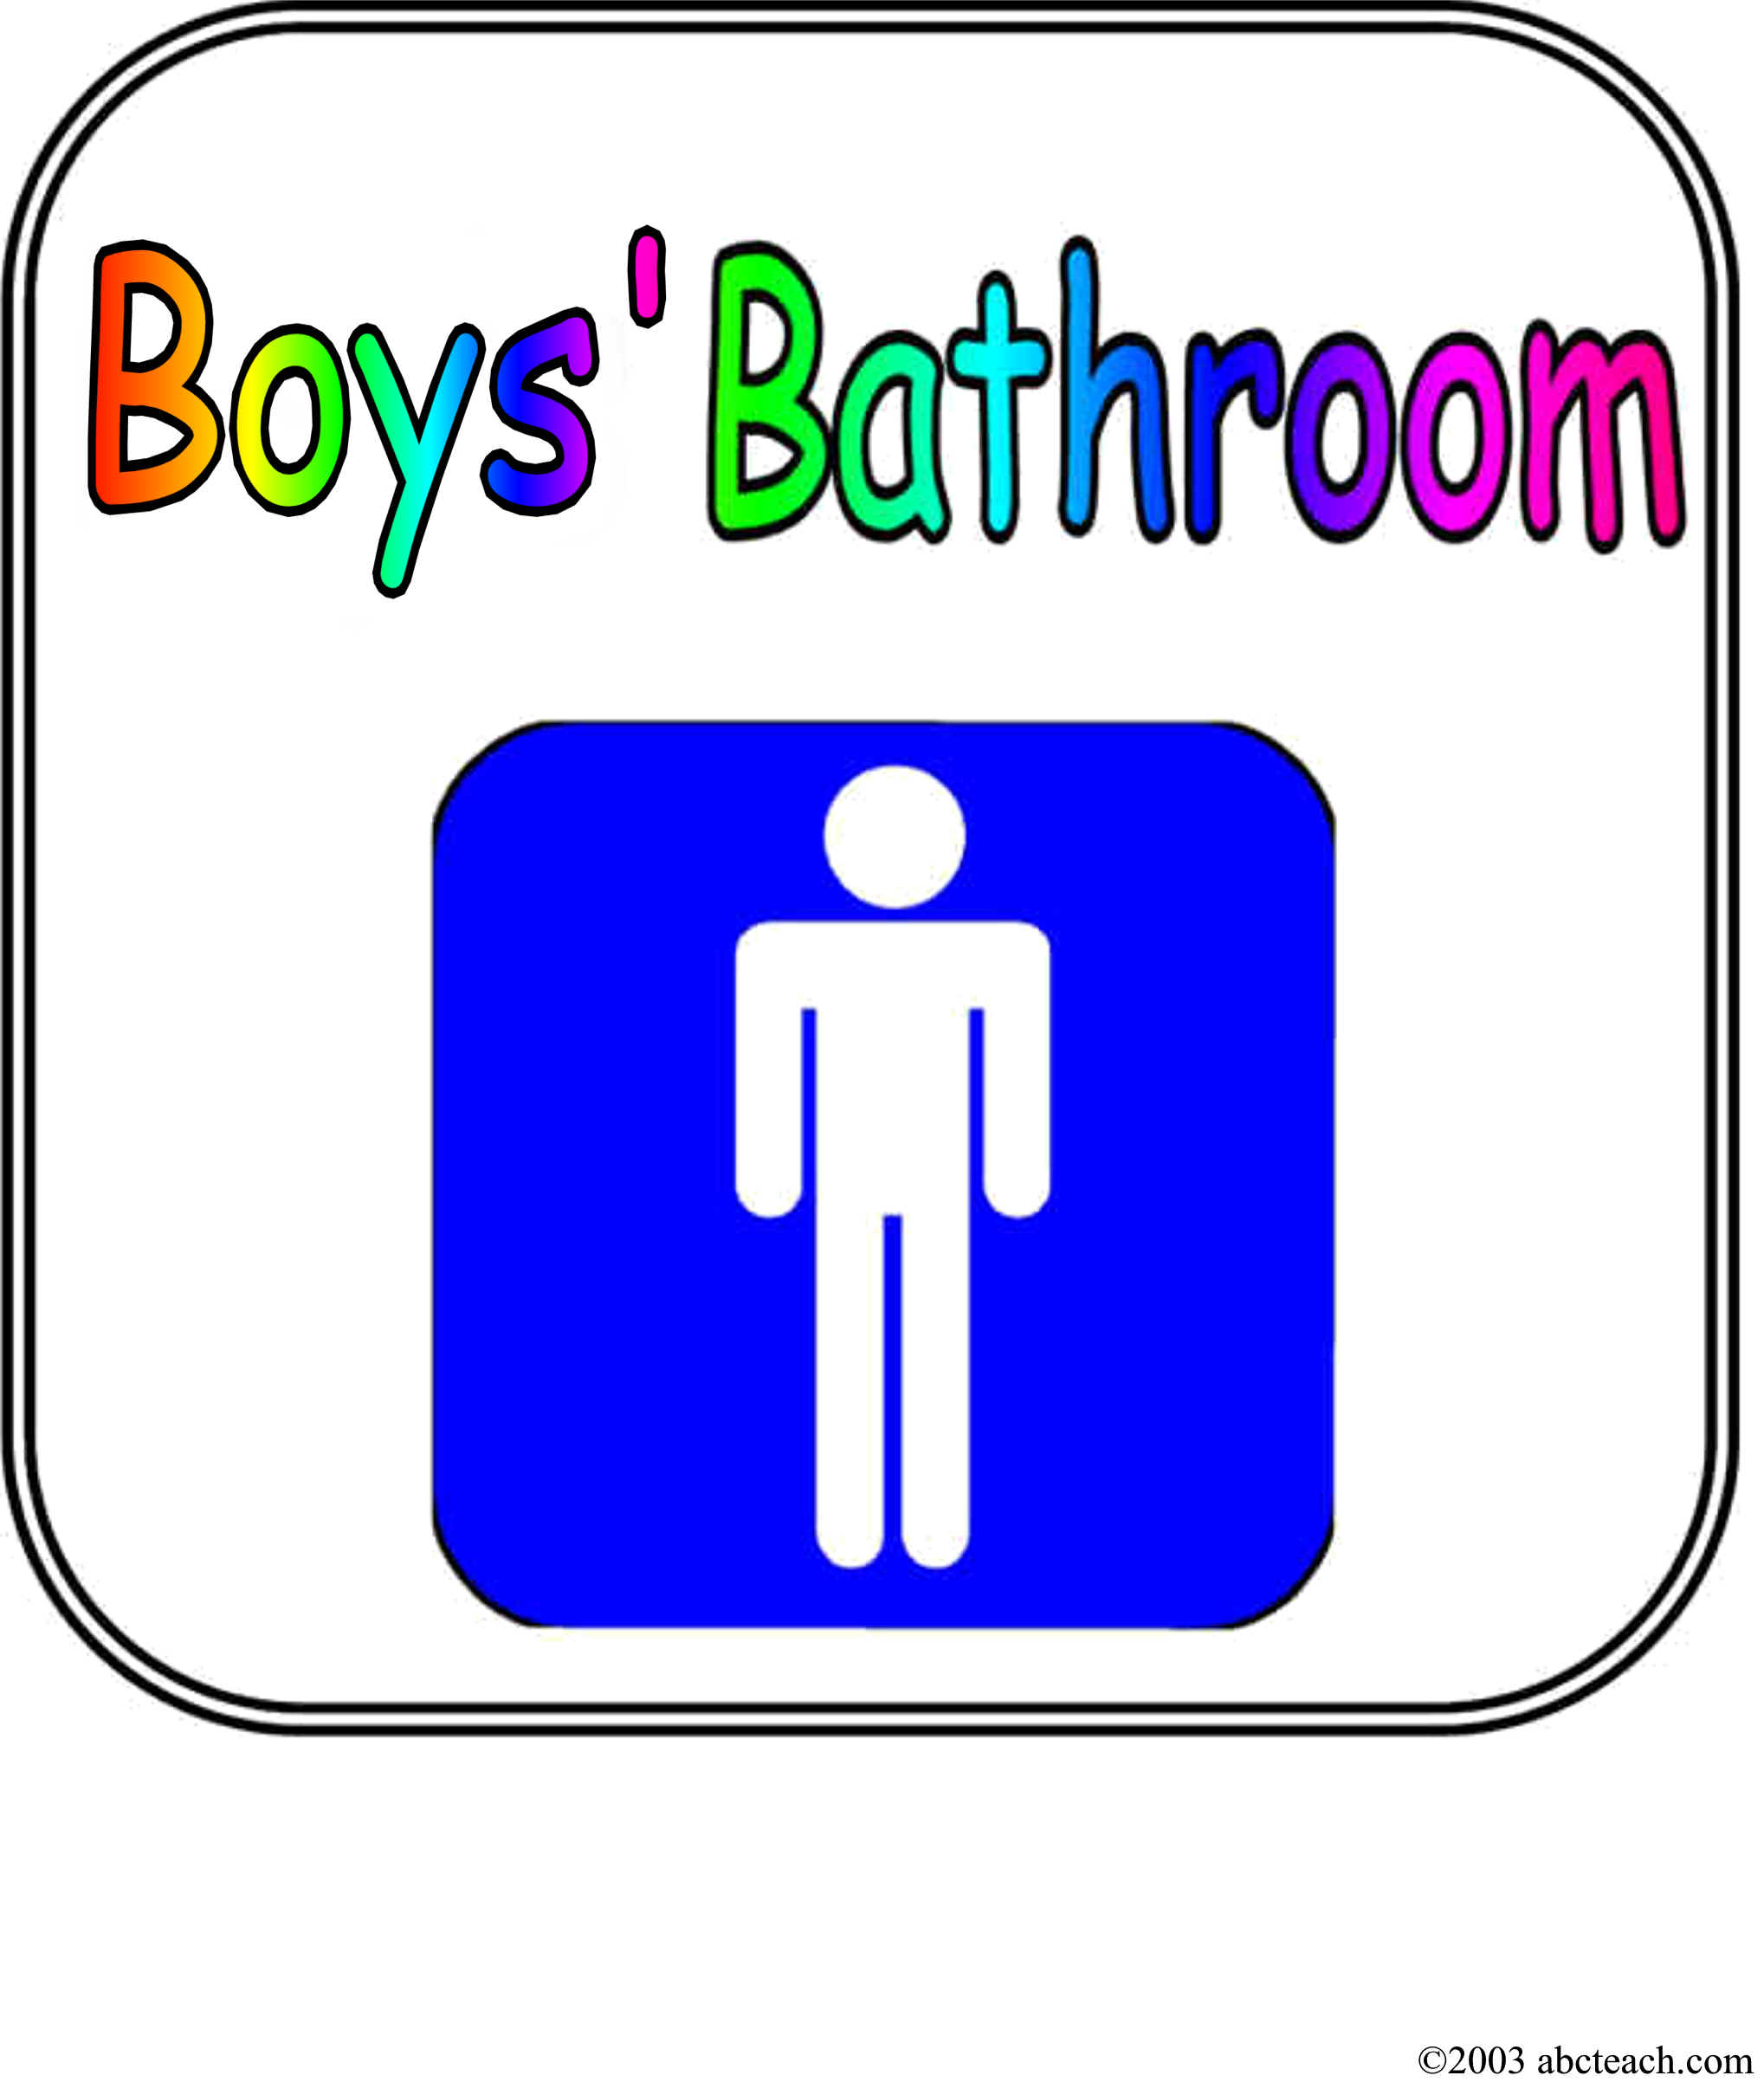 Boys Bathroom Pass 28 Images 30 Things Every Singaporean 90s Kid Will Never Forget The